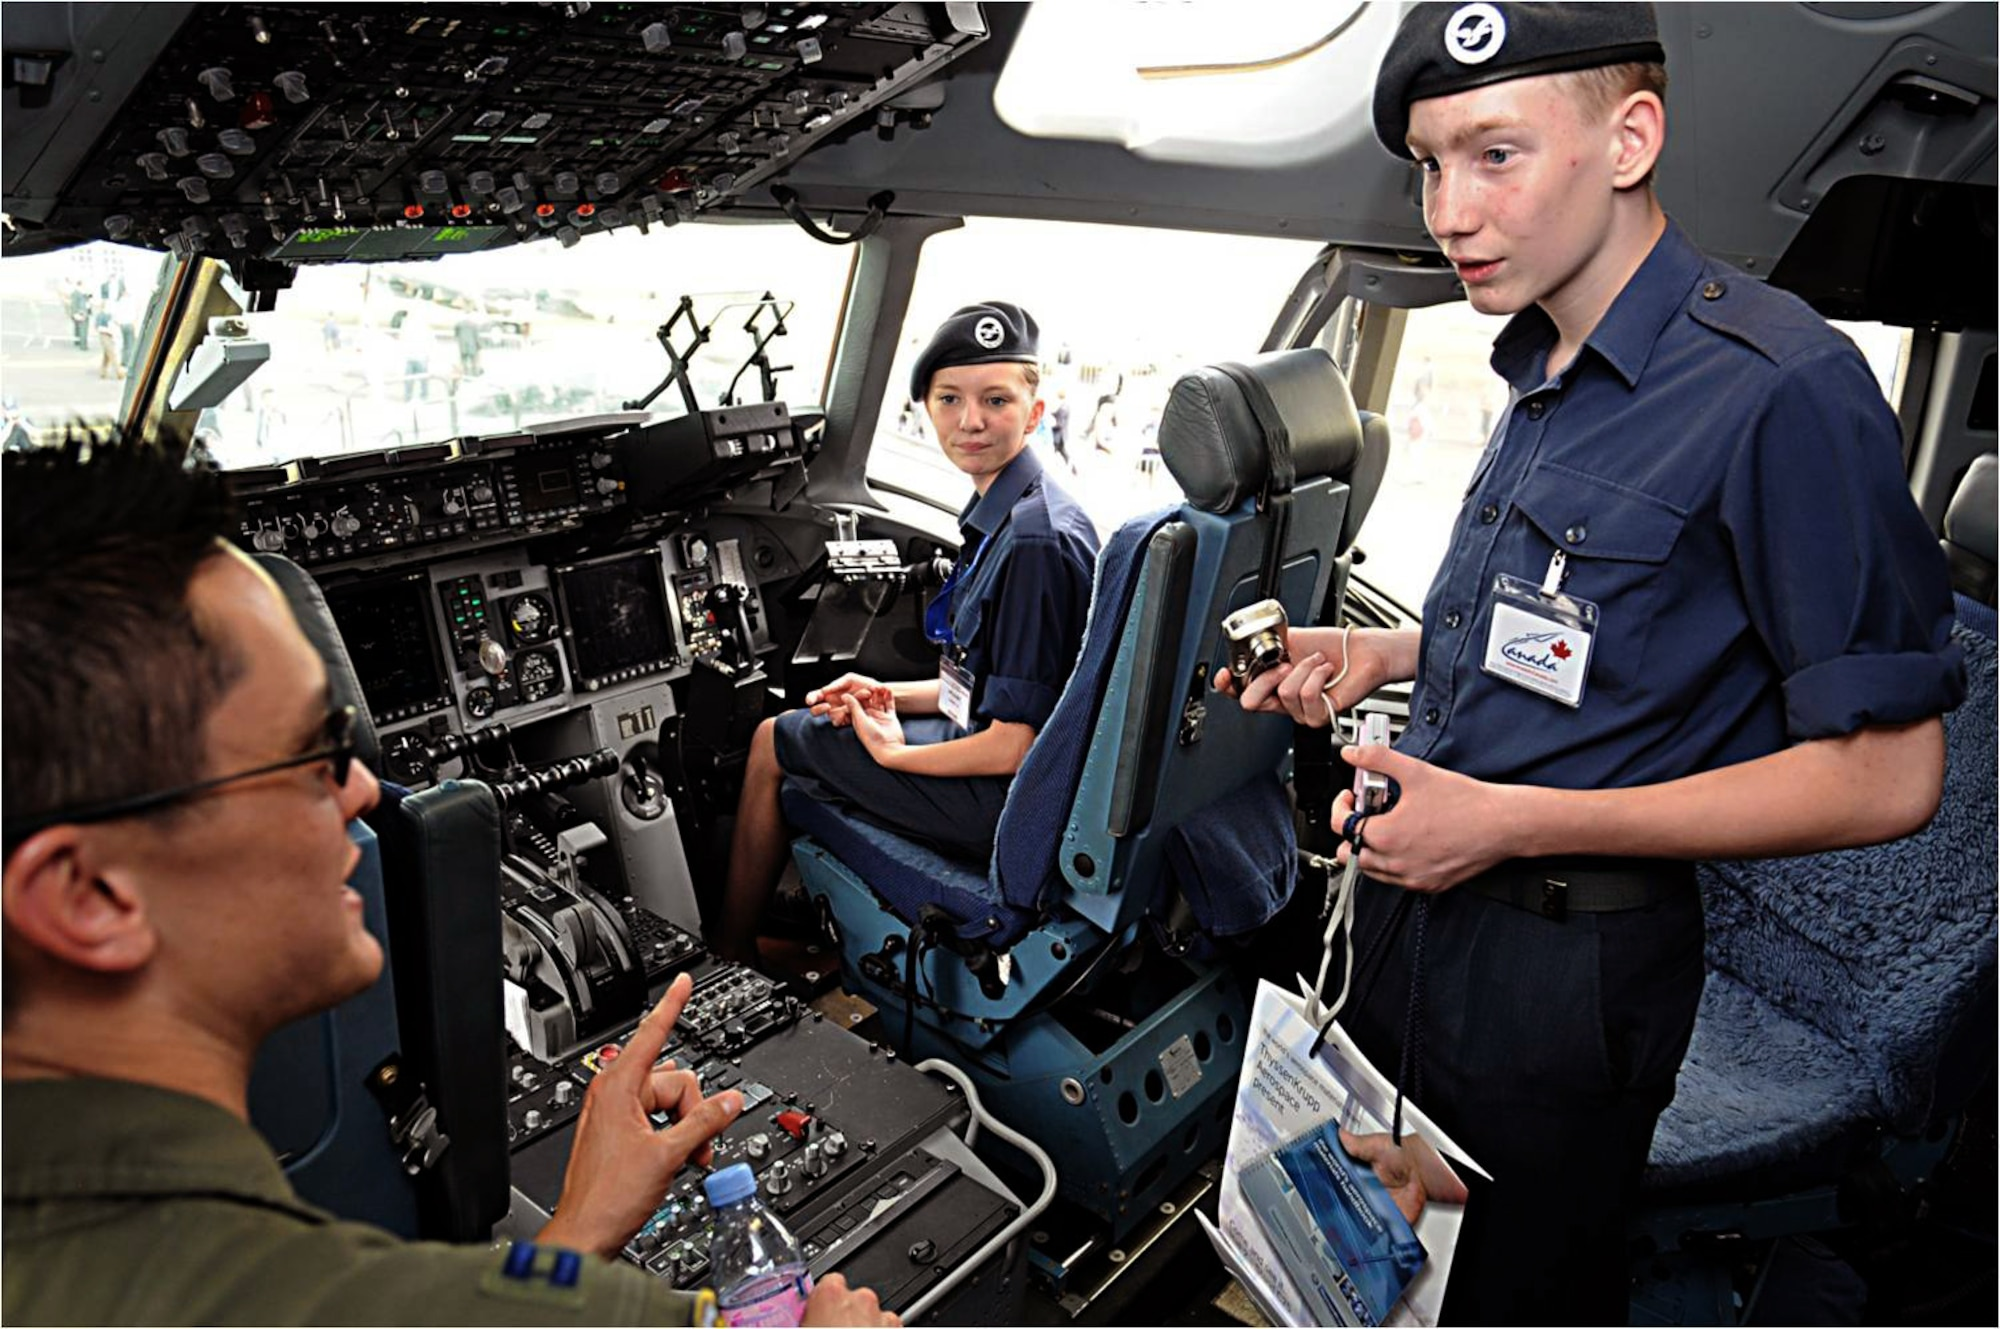 Capt. Gordon Roman (left) explains cockpit controls to British cadets July 20, 2010, in Farnborough, England. Eleven U.S. military aircraft and approximately 70 personnel representing all branches of service participate in the 2010 Farnborough International Air Show.  Captain Roman is a C-17 Globemaster III pilot from Travis Air Force Base, Calif. (U.S. Air Force photo/Staff Sgt. Jerry Fleshman)